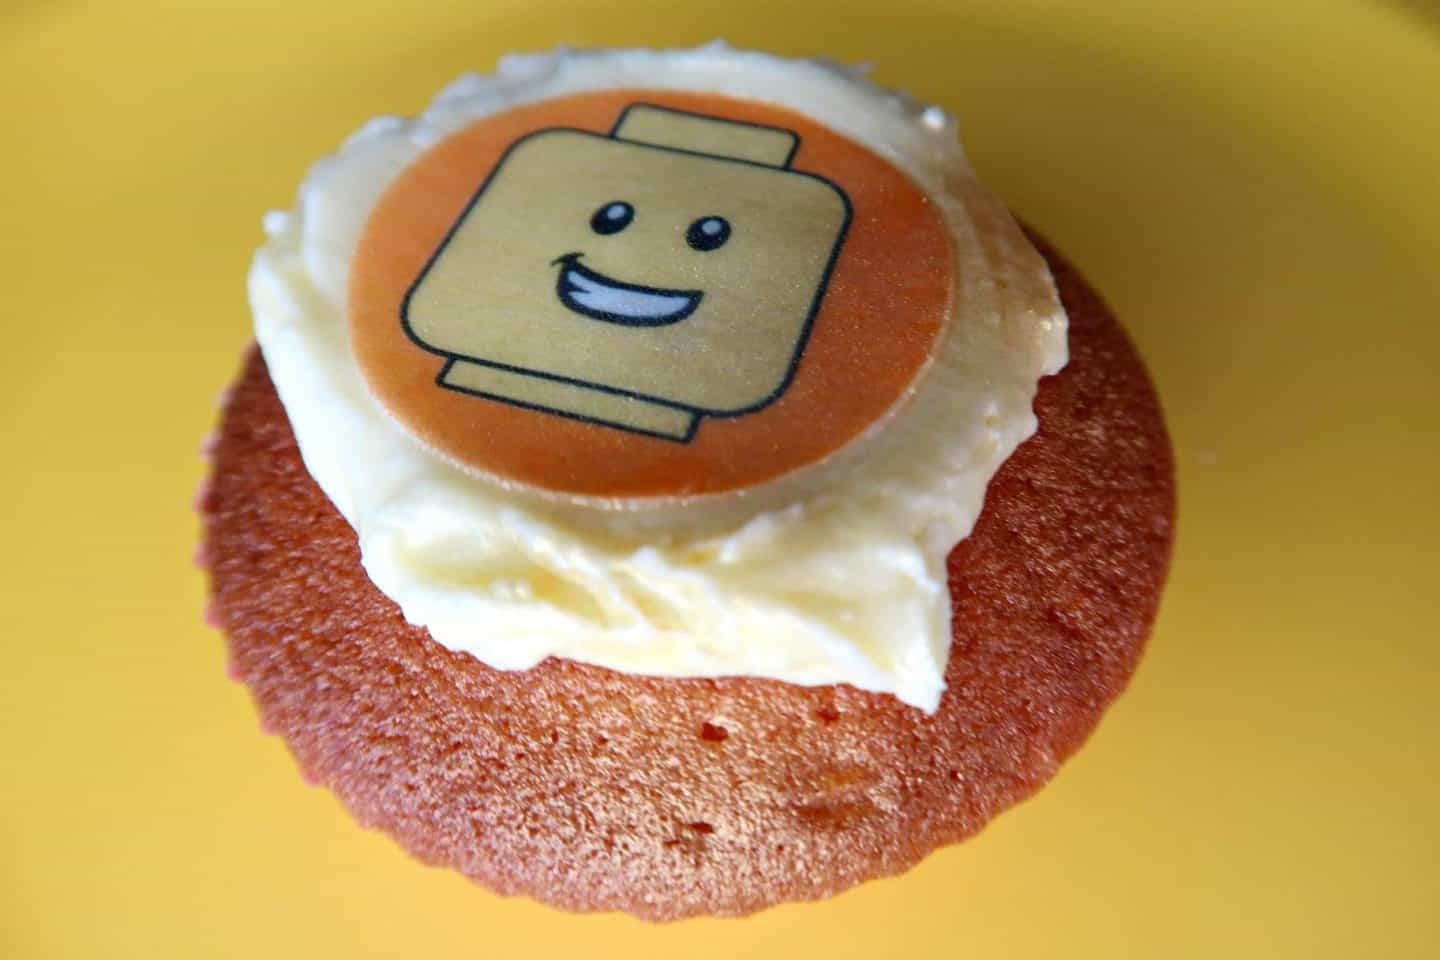 Fairy cake with butter cream and edible Lego head